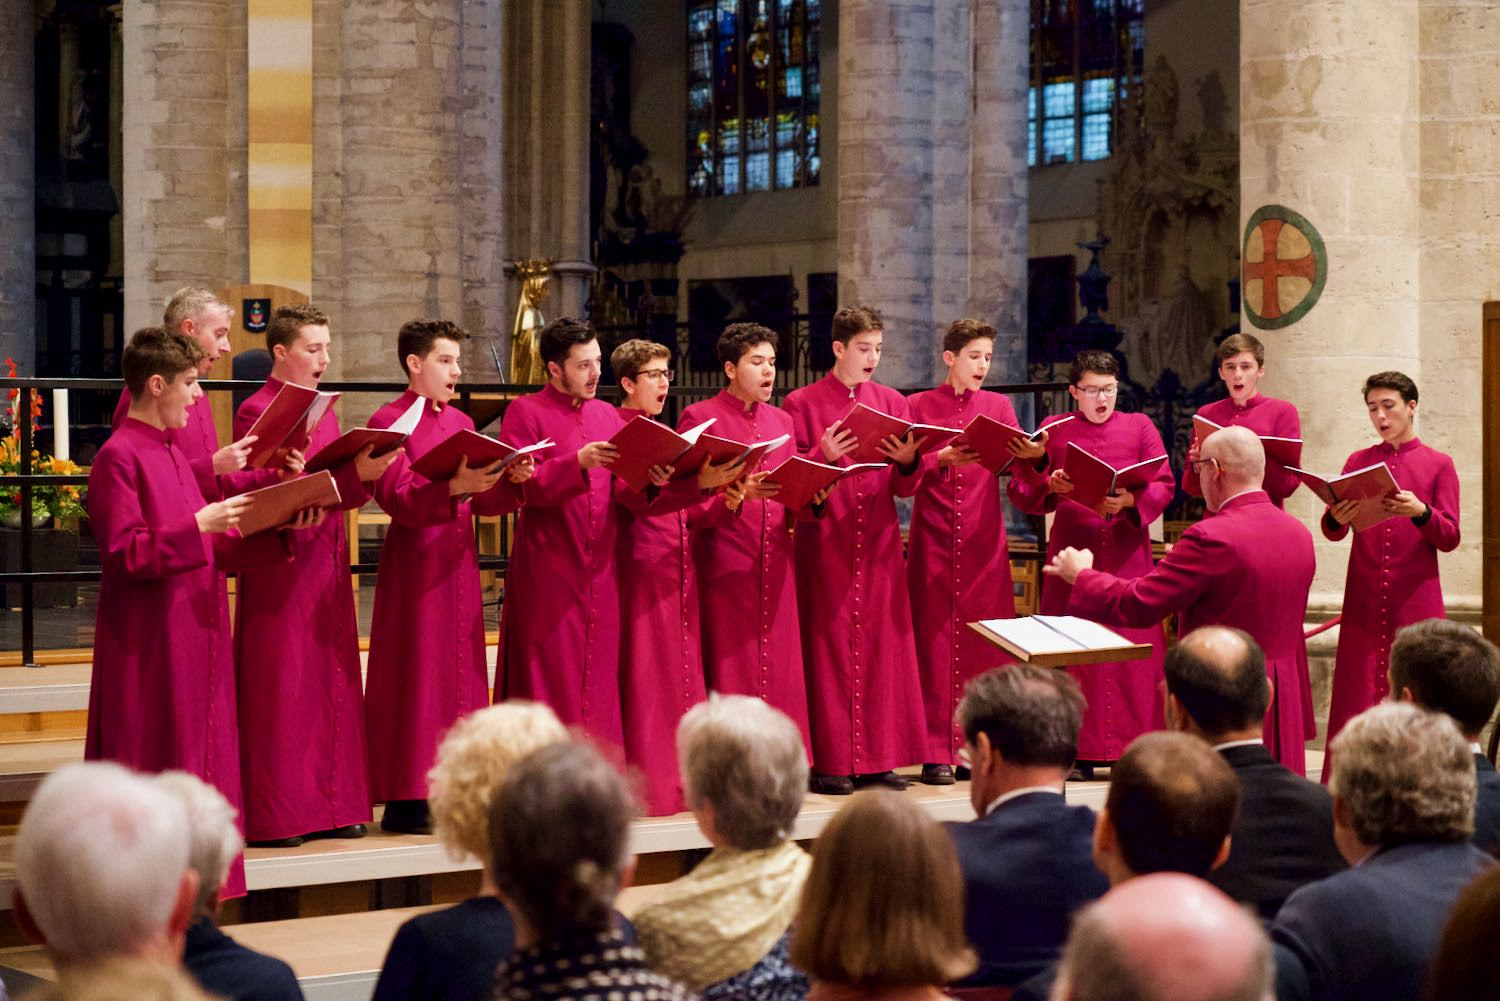 The Scholars sing in Brussels Cathedral.